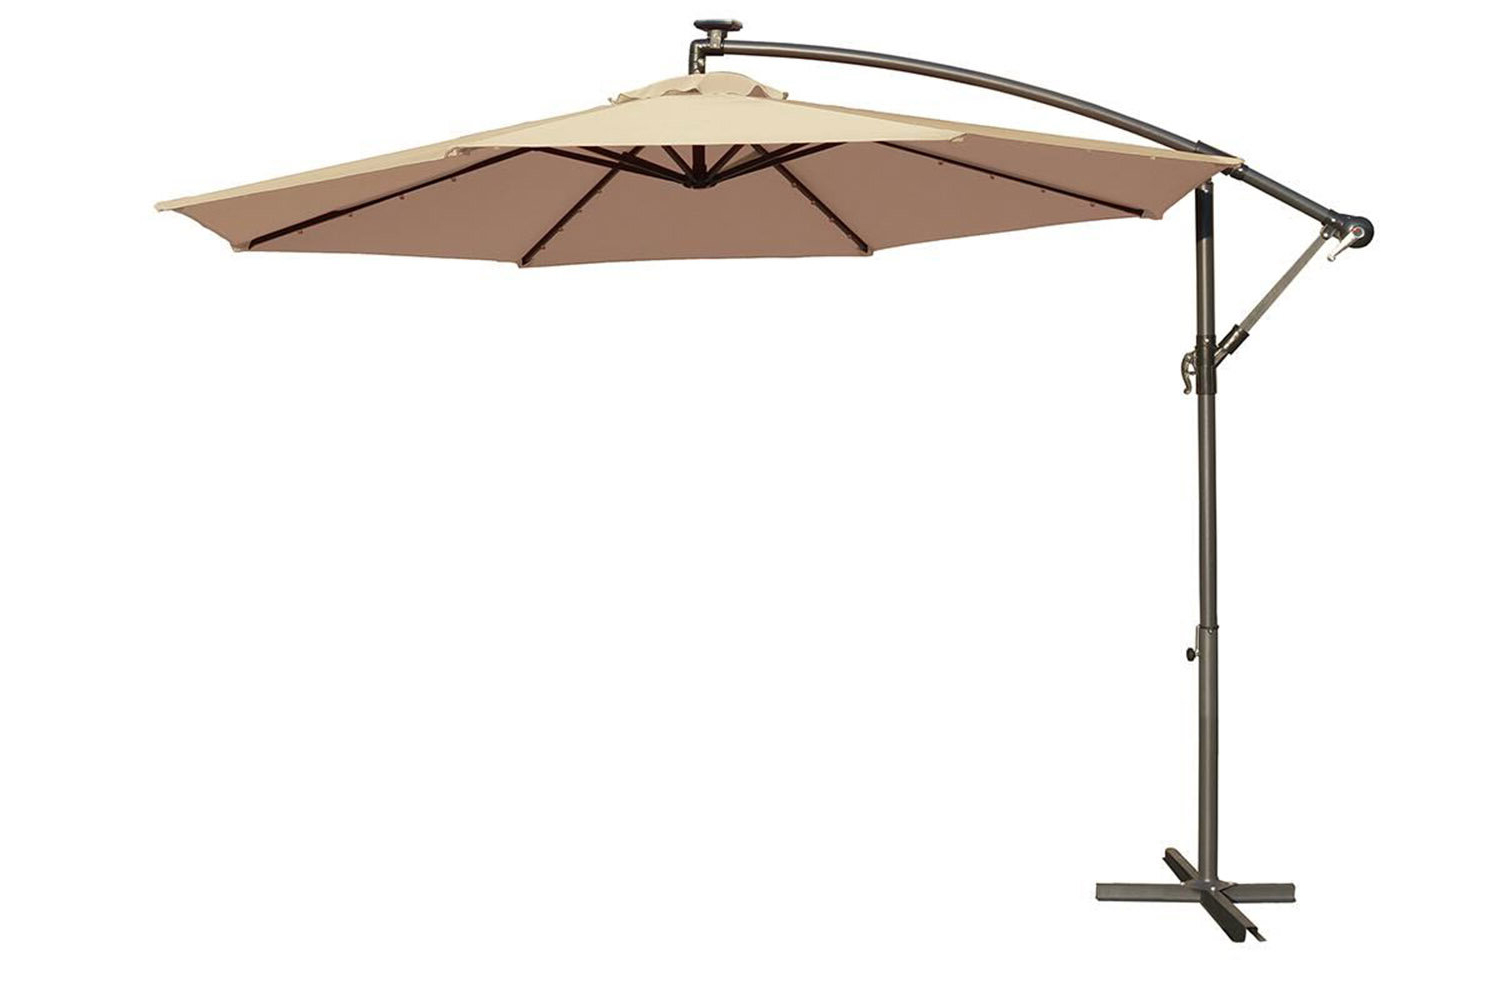 Dunwich 10' Cantilever Umbrella Regarding Best And Newest Bostic Cantilever Umbrellas (View 3 of 20)